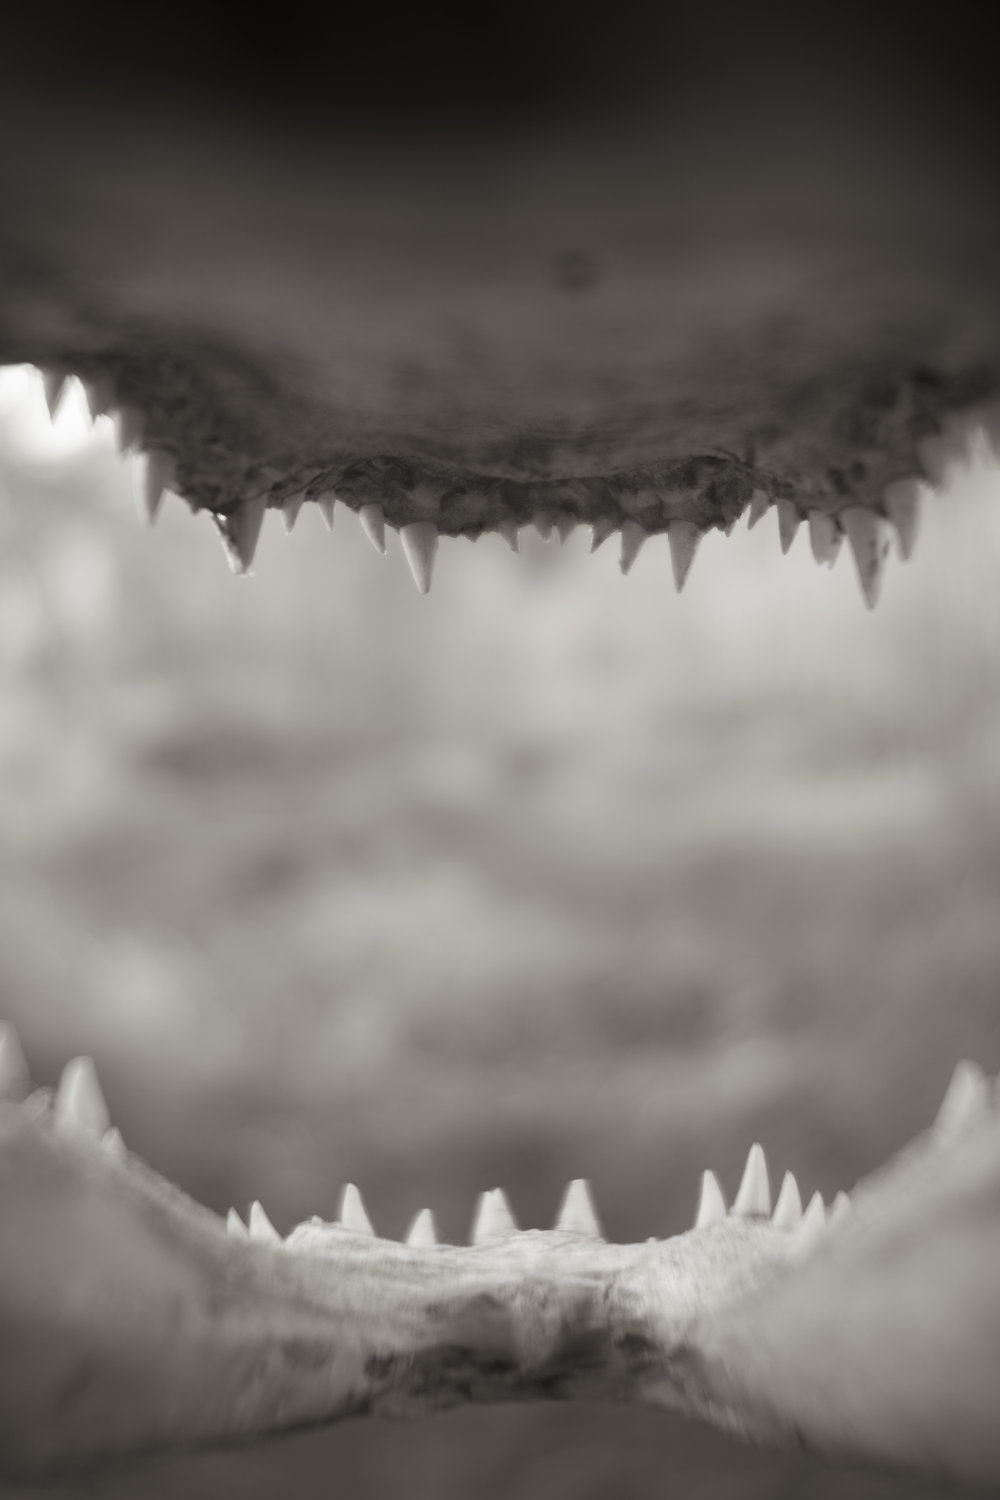 Alligator Teeth